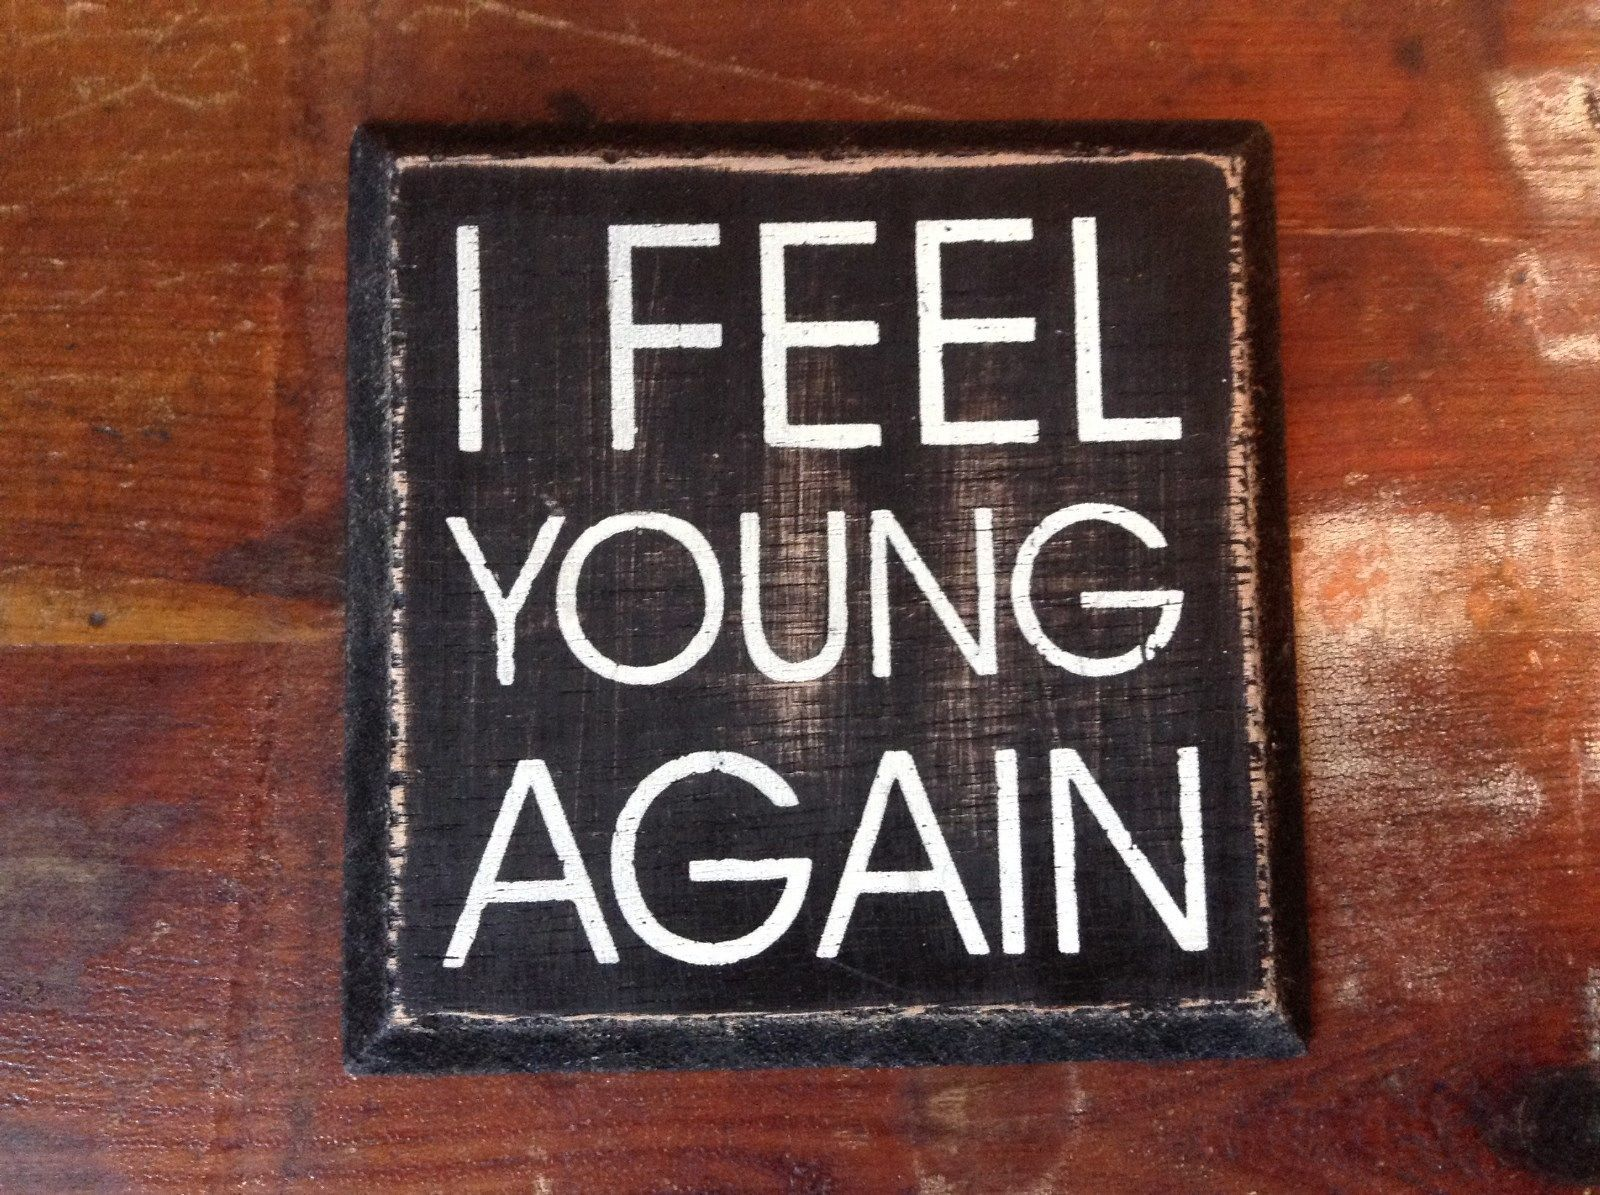 I FEEL YOUNG AGAIN Small Square Black Wooden Tile Sign Magnet